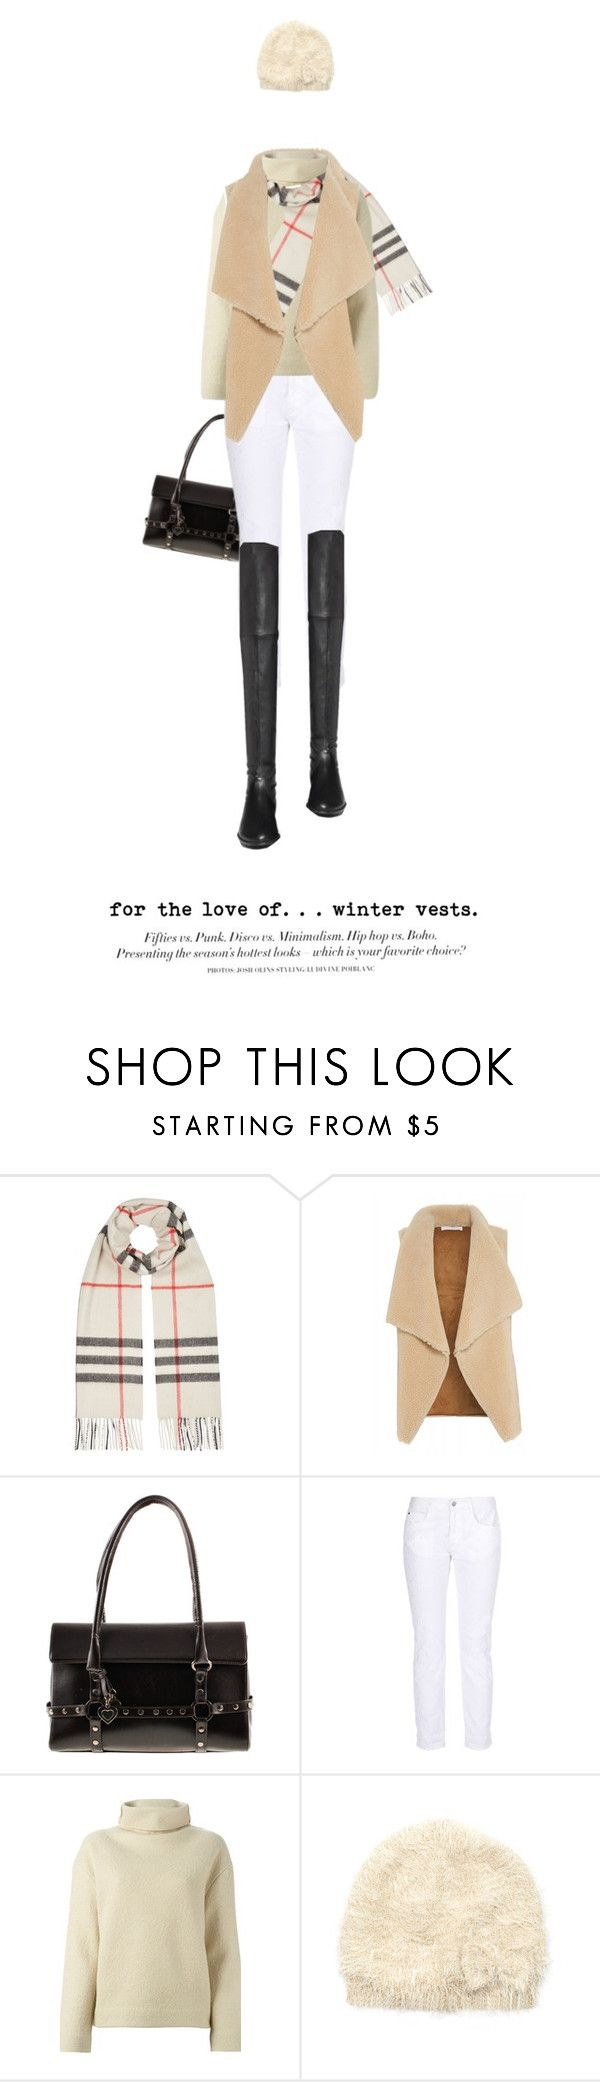 """""""in-vested"""" by maura717 ❤ liked on Polyvore featuring Burberry, Velvet by Graham & Spencer, Stuart Weitzman, STELLA McCARTNEY, Étoile Isabel Marant, Monsoon and H&M"""